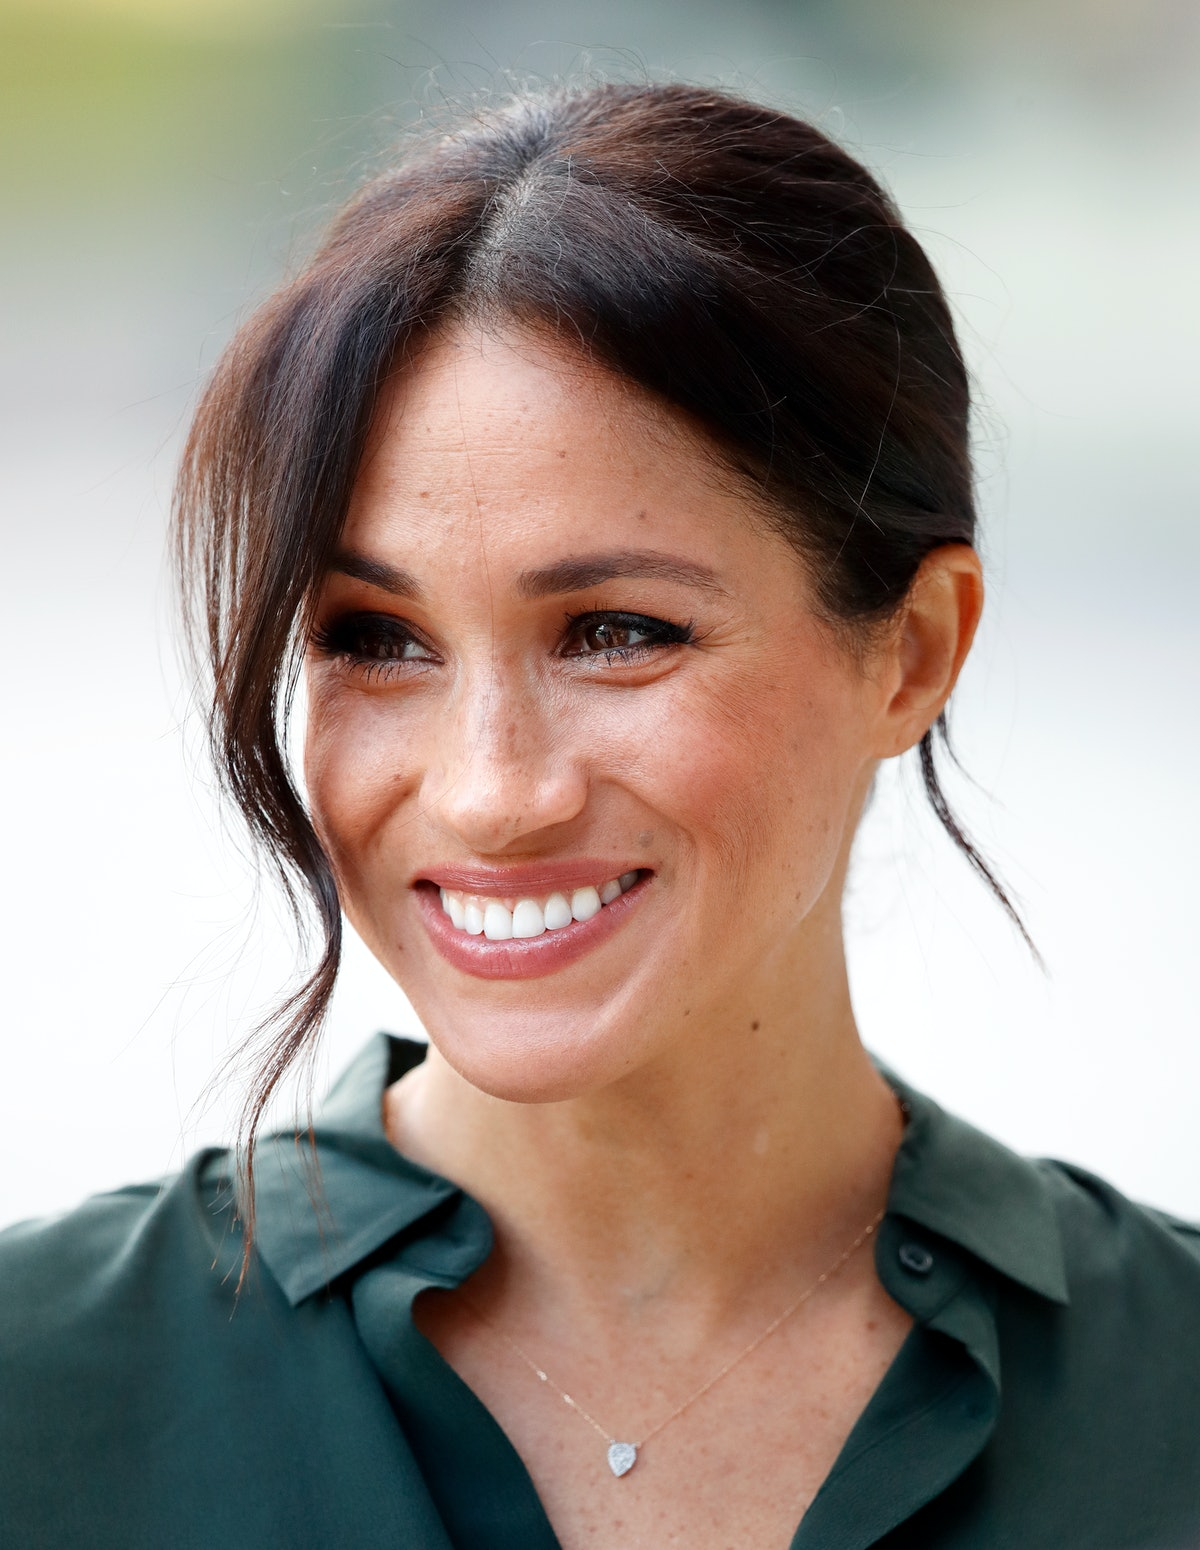 Meghan Markle is including her daughter Lilibet Diana in her new book.